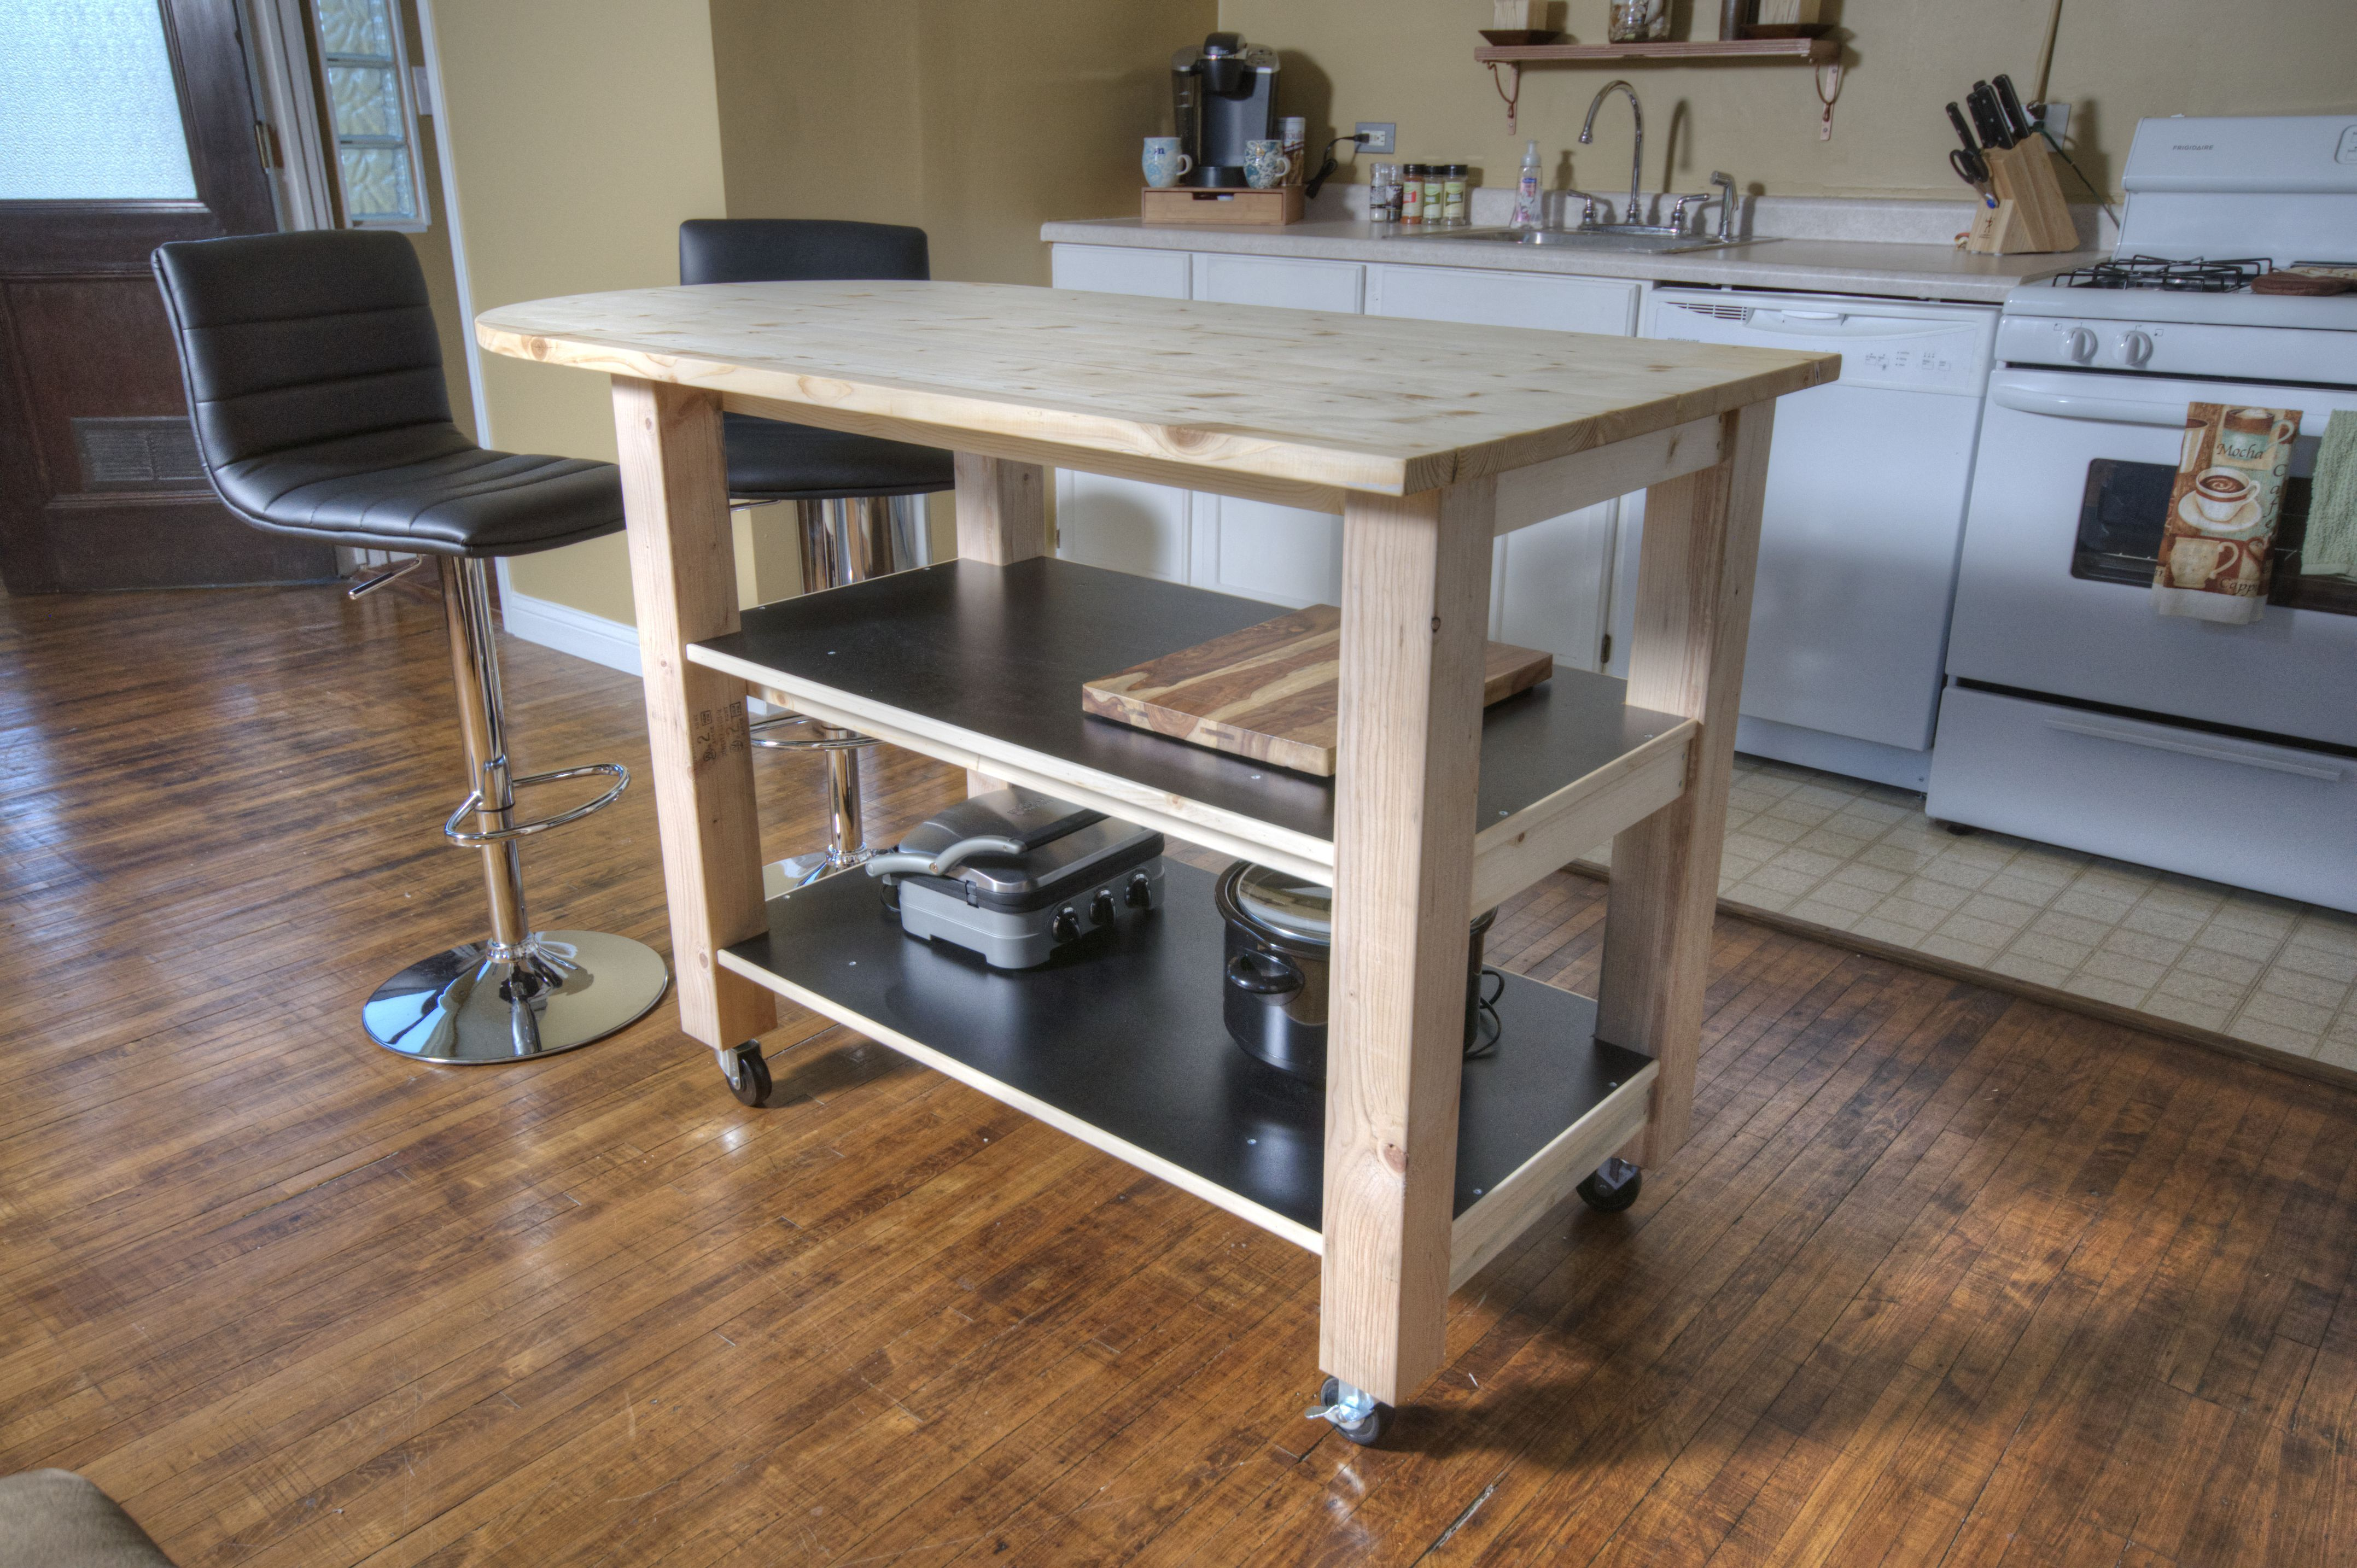 How To Build Diy Kitchen Island On Wheels Diy How To Review Videos Pinterest Diy